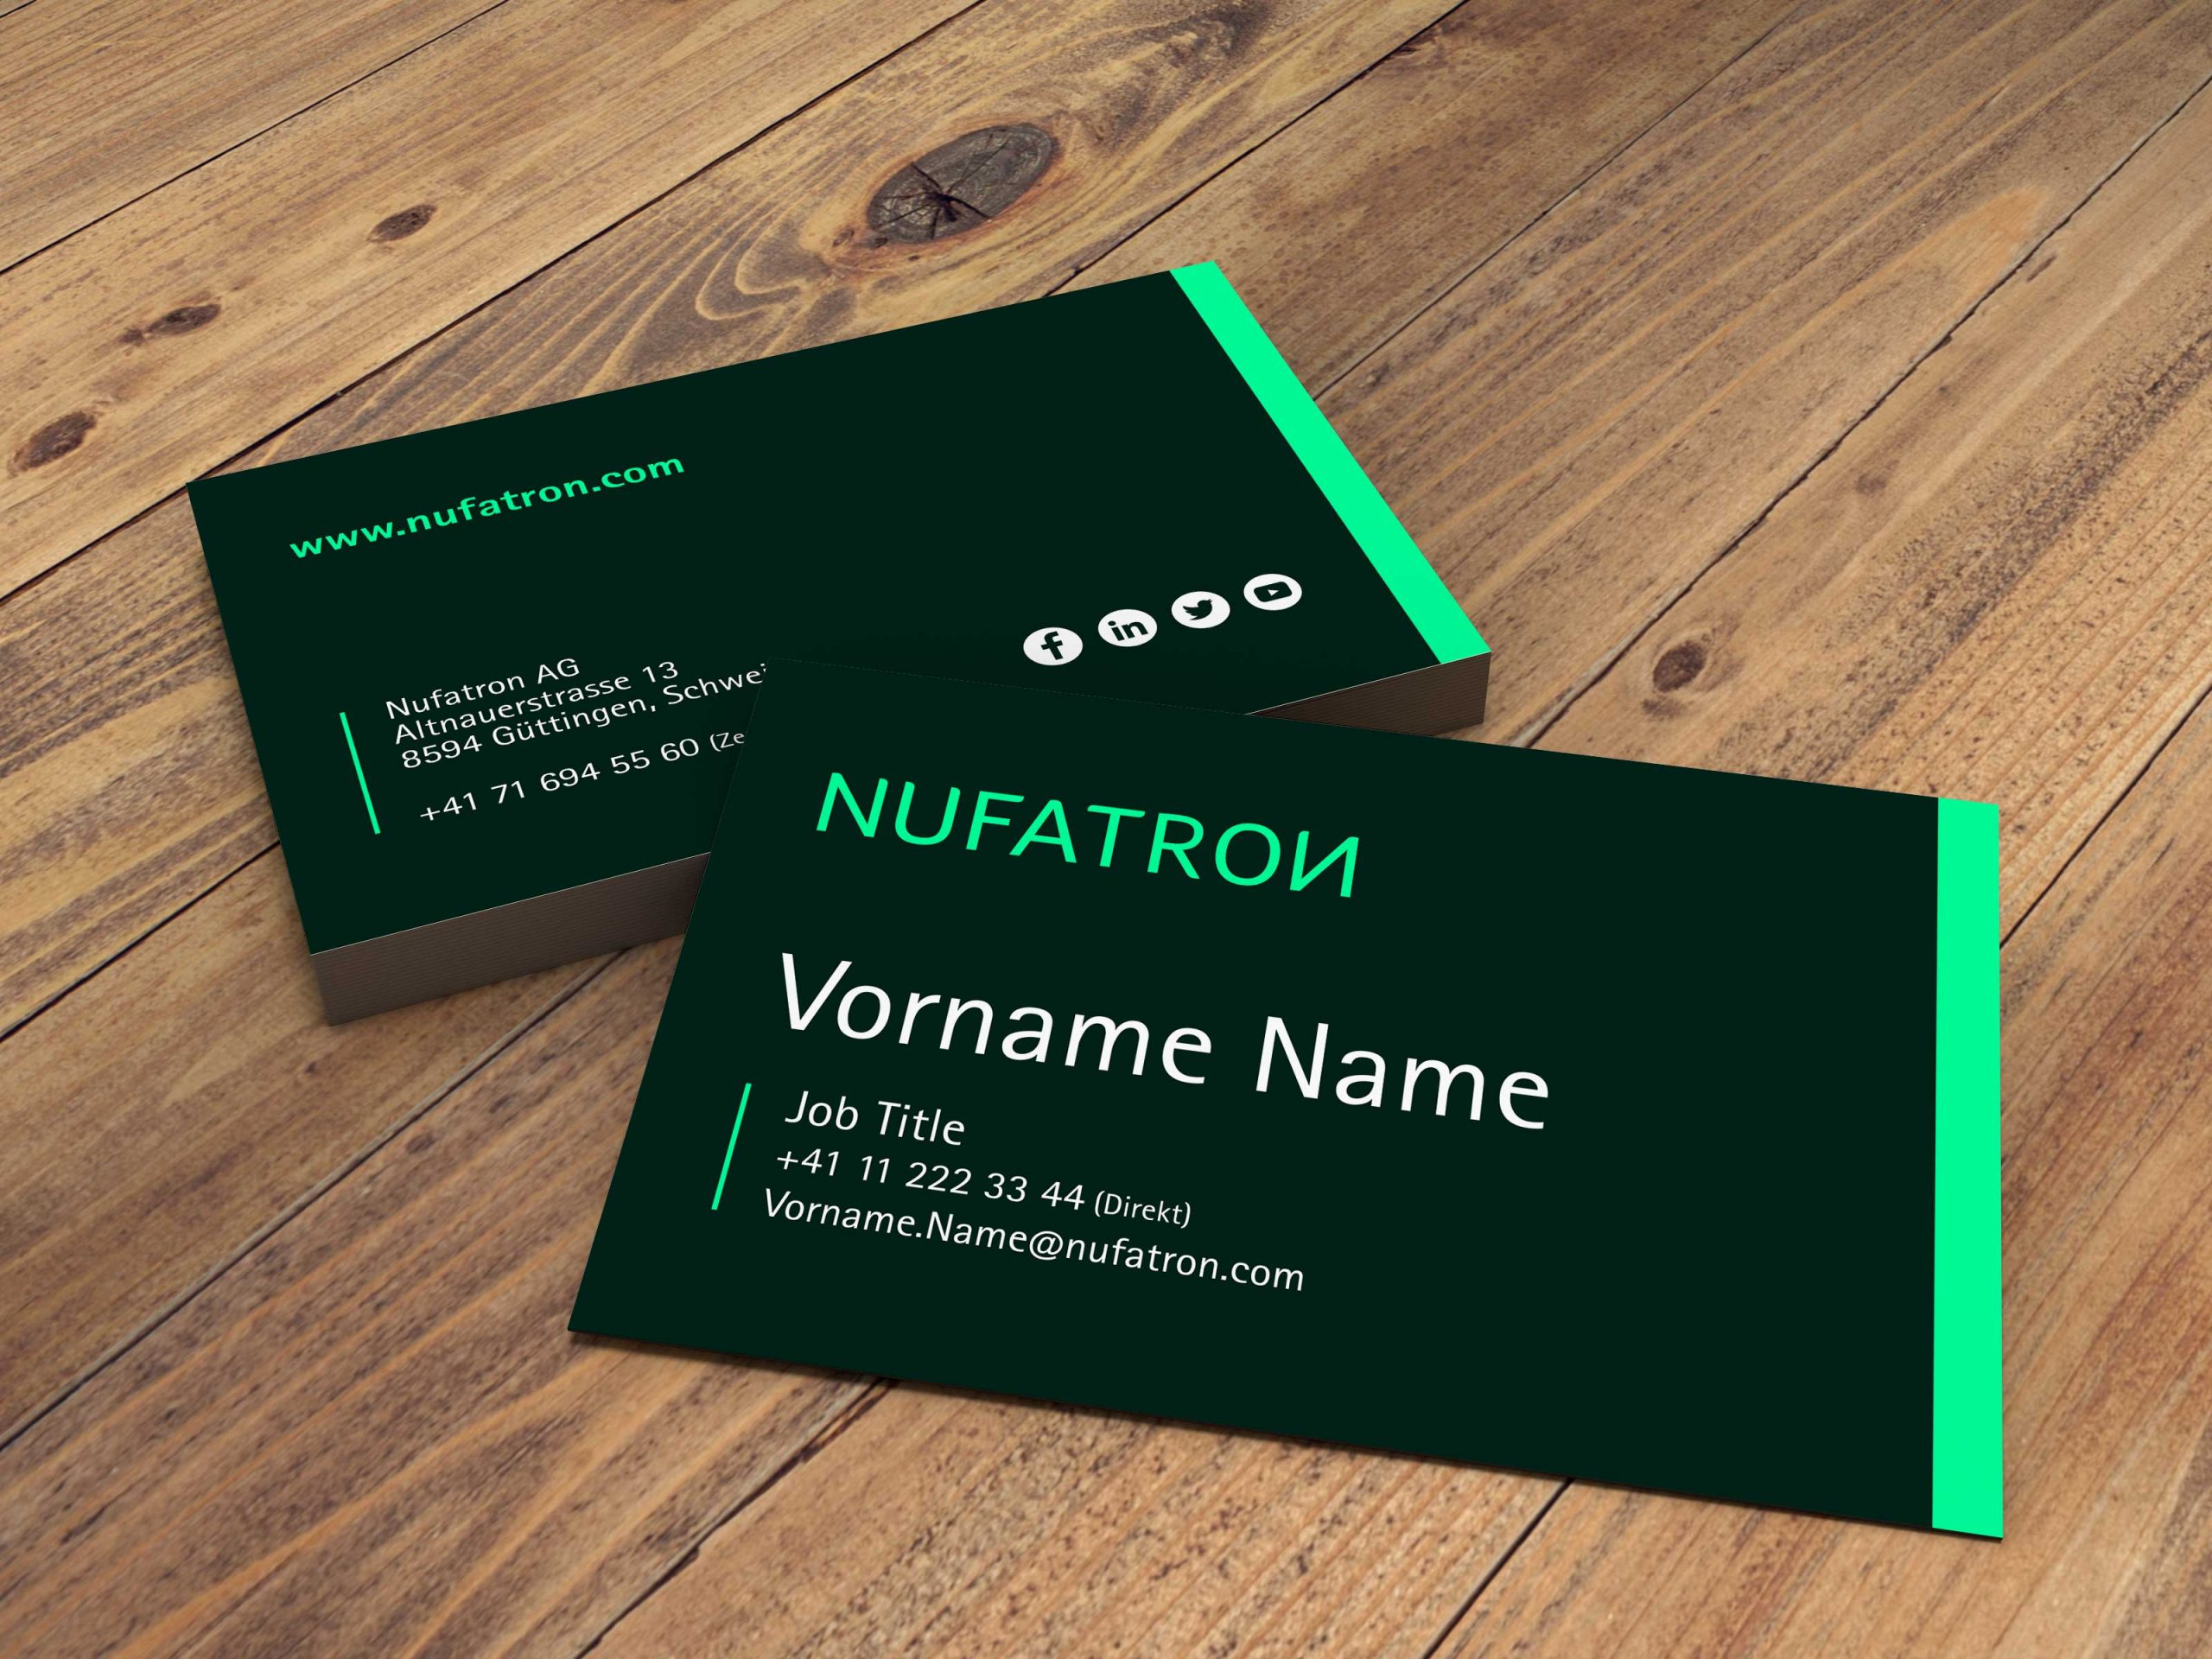 Nufatron Business Card Design